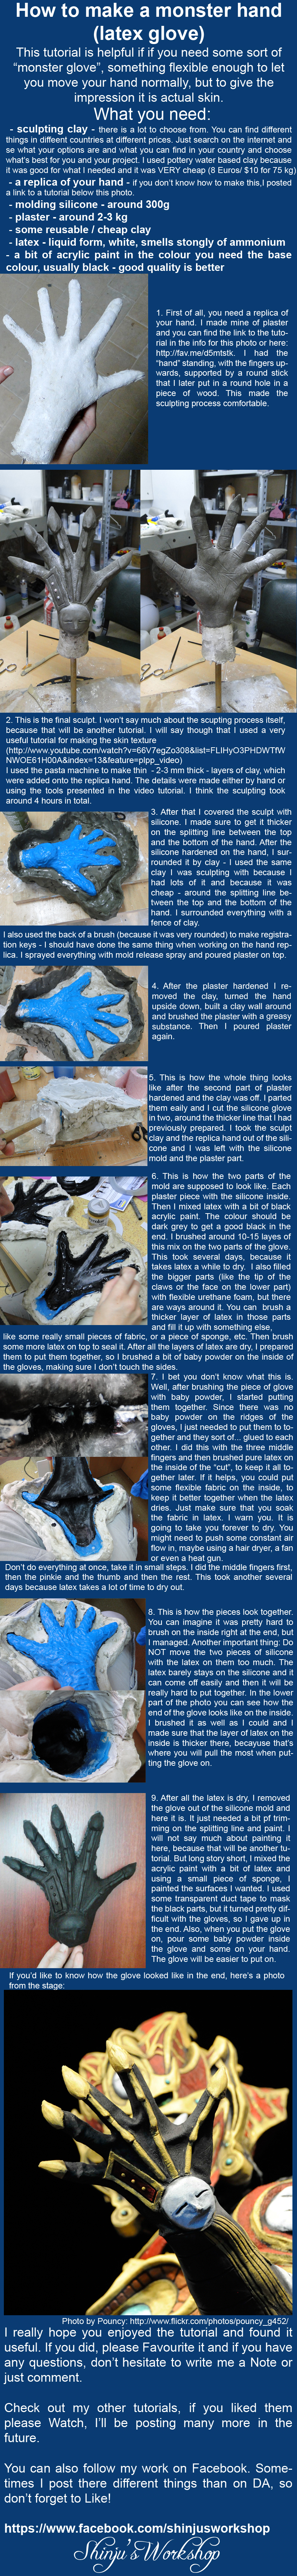 Tutorial: How to make a latex glove by ShinjusWorkshop